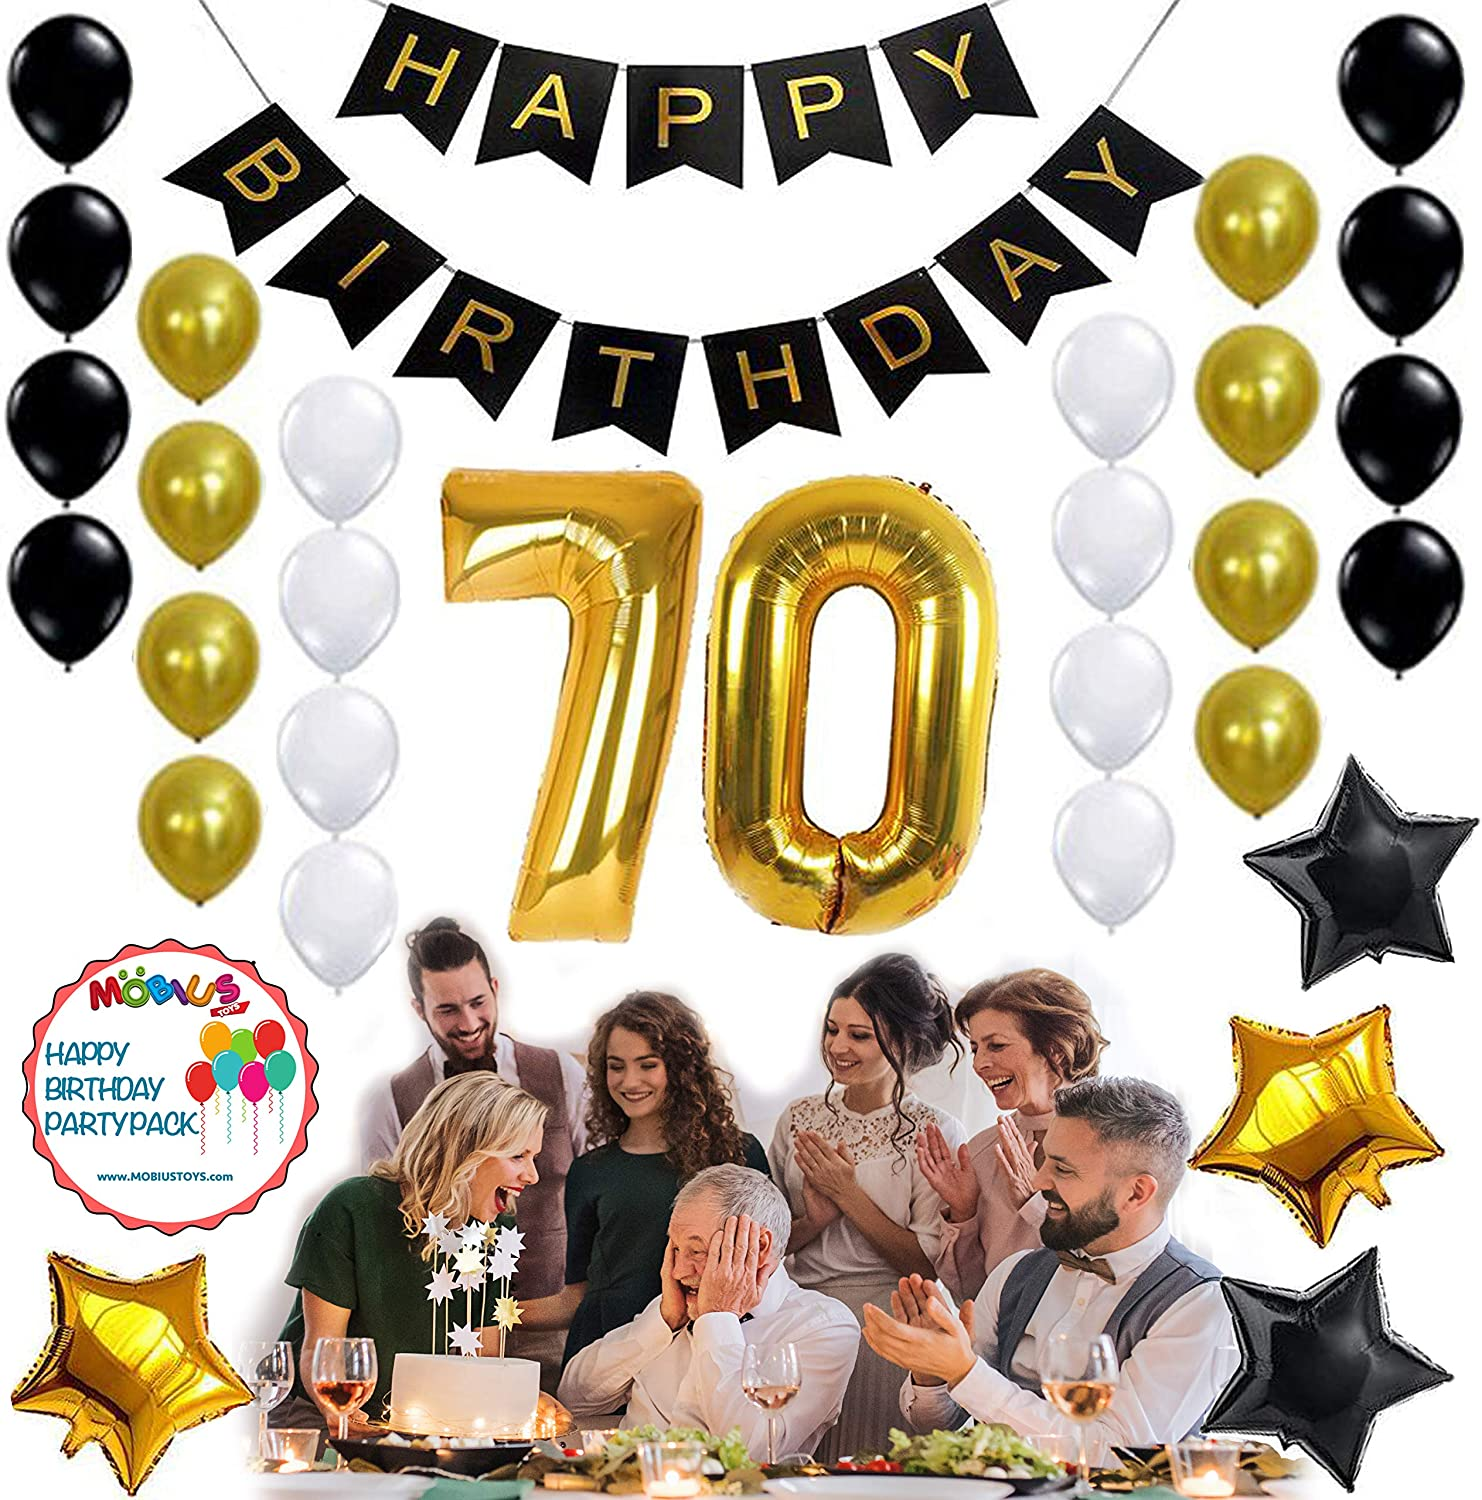 70th BIRTHDAY PARTY DECORATIONS KIT 31pcs White Black Gold Helium Balloons With Banner 70 Th Birthday Decorations Party Supplies For Men Women